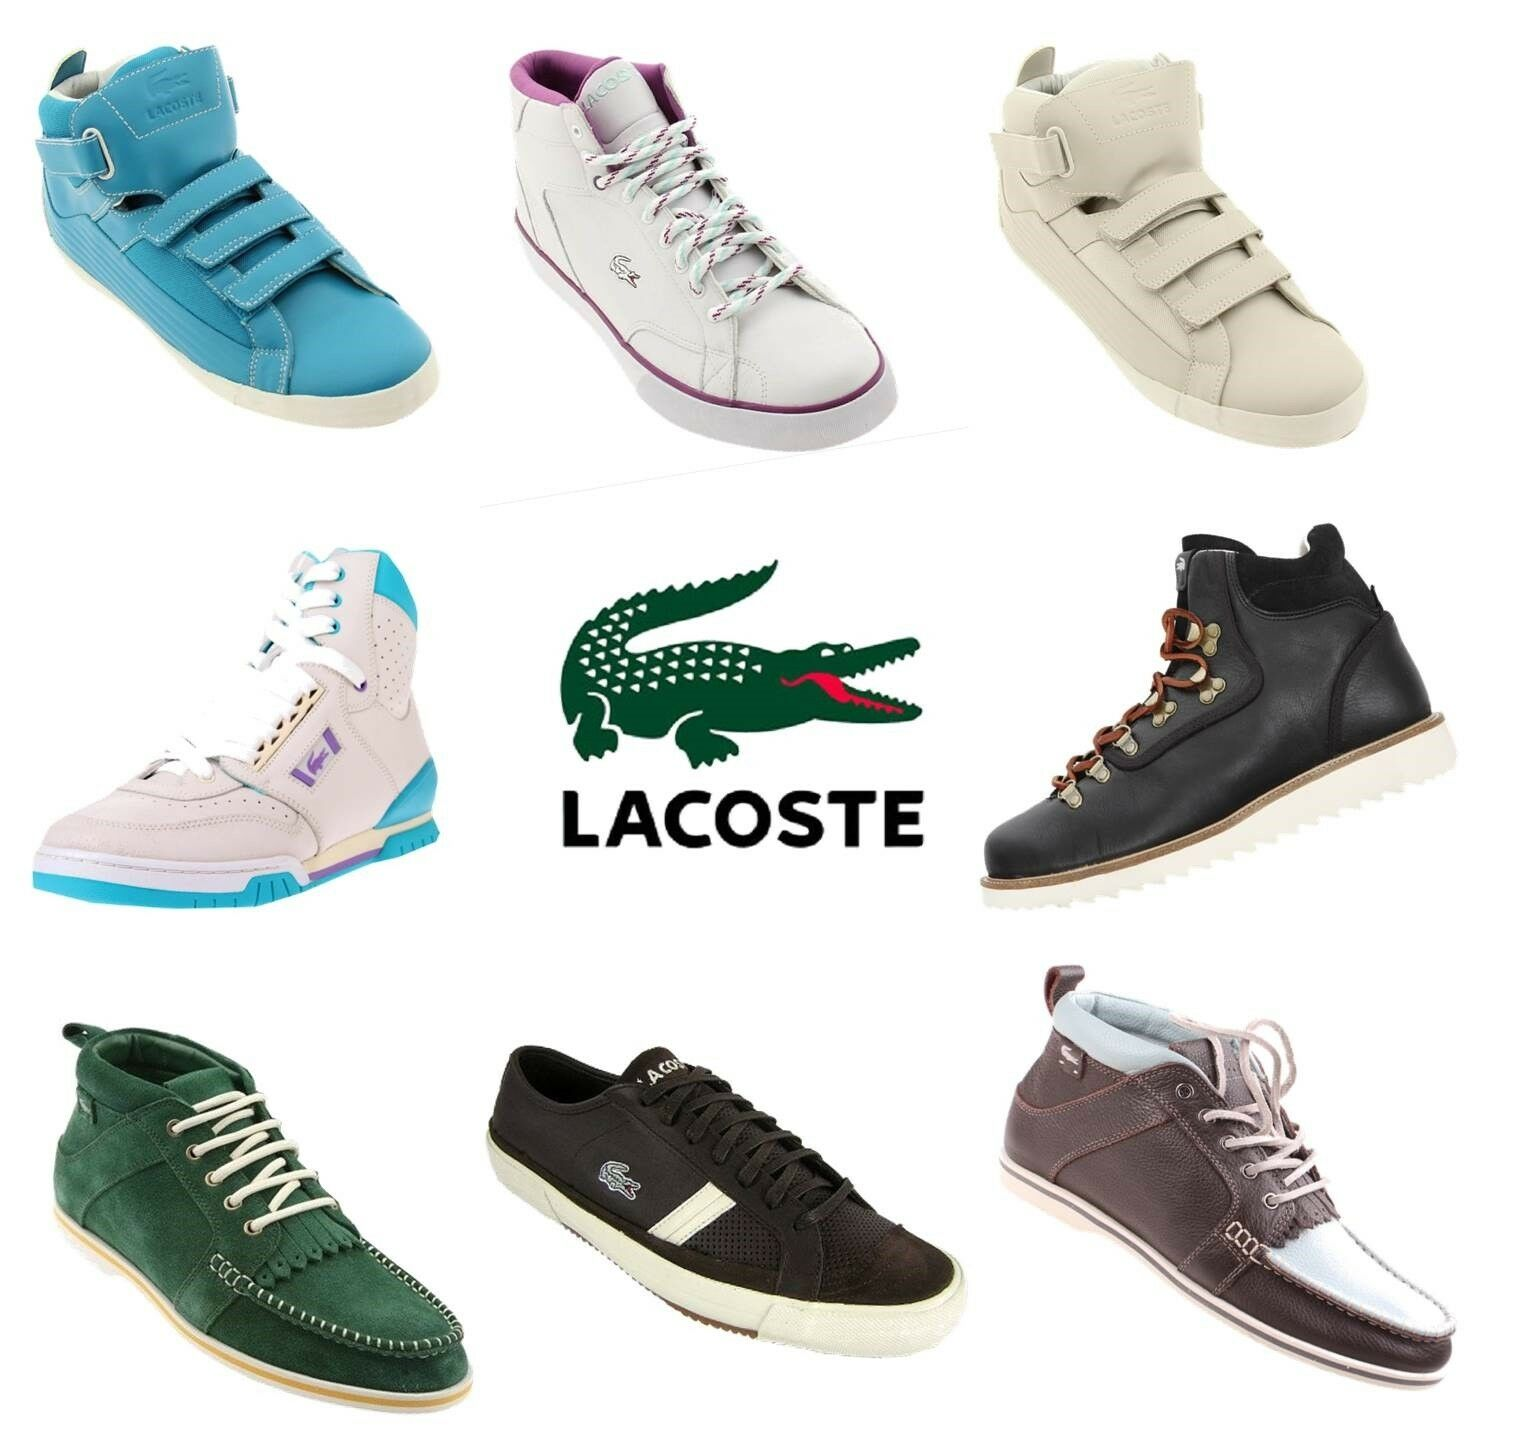 Lacoste shoes Trainers Hi Lo Top Lace Up Leather Smart Casual Footwear Size 6-10